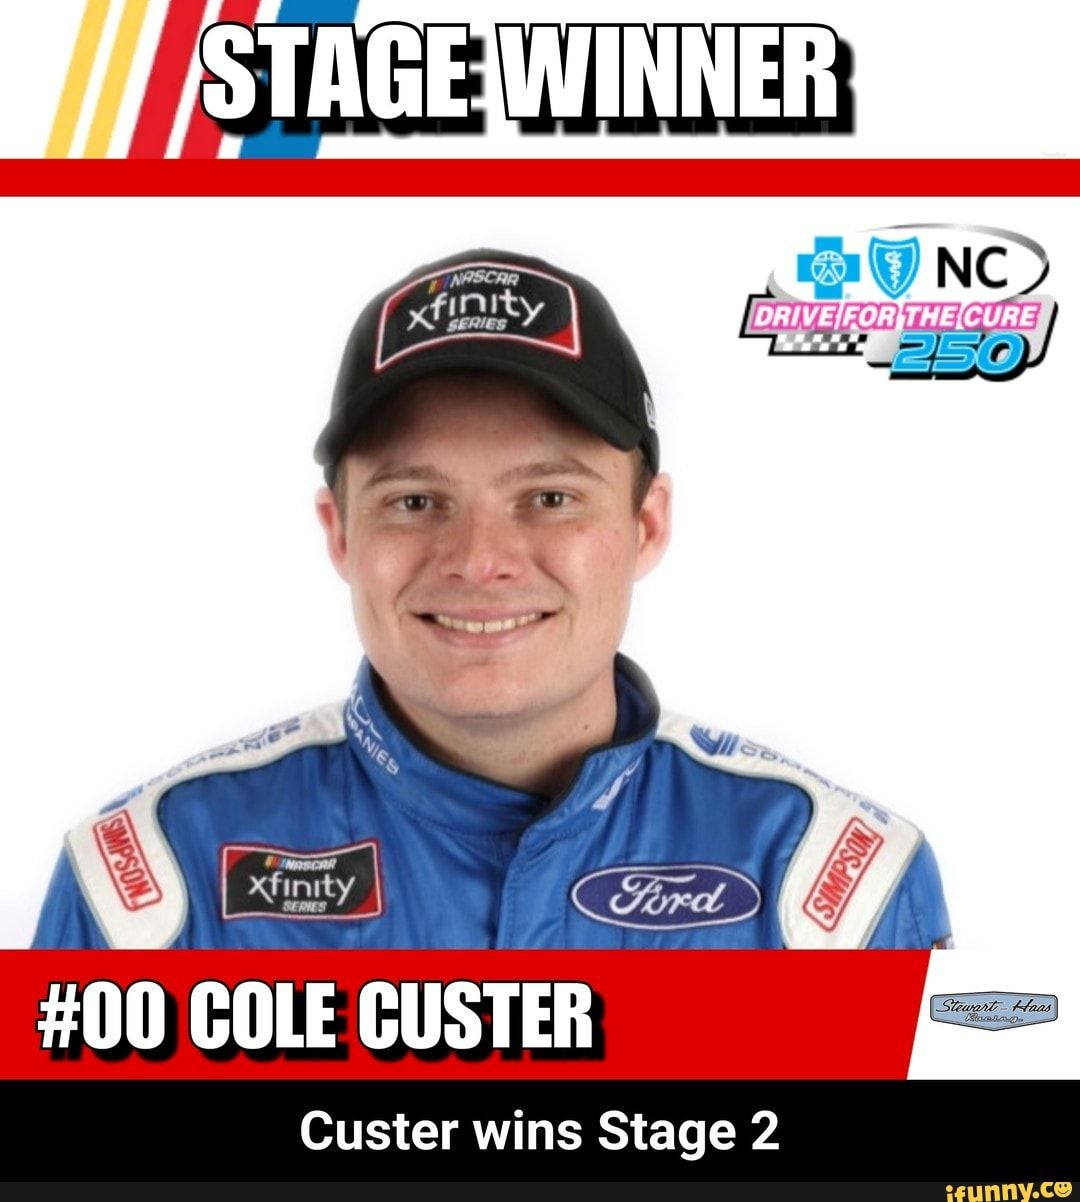 00 Gºli Buster Custer Wins Stage 2 Custer Wins Stage 2 Ifunny Funny Sports Memes Memes Custer